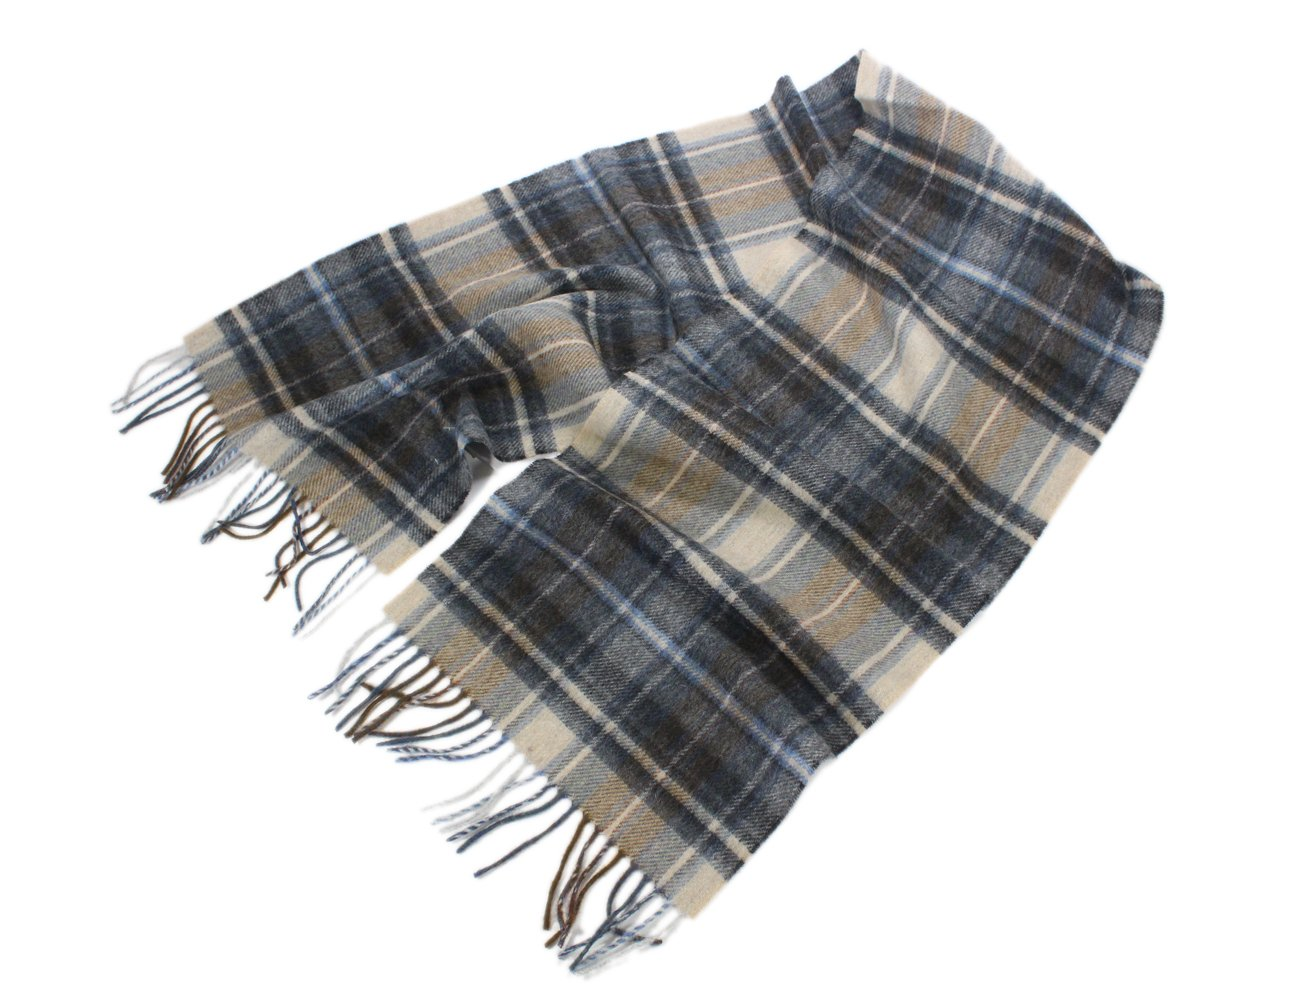 Set of 12 Lambswool Scarves Black & Tan Plaid From Ireland 63'' x 12''